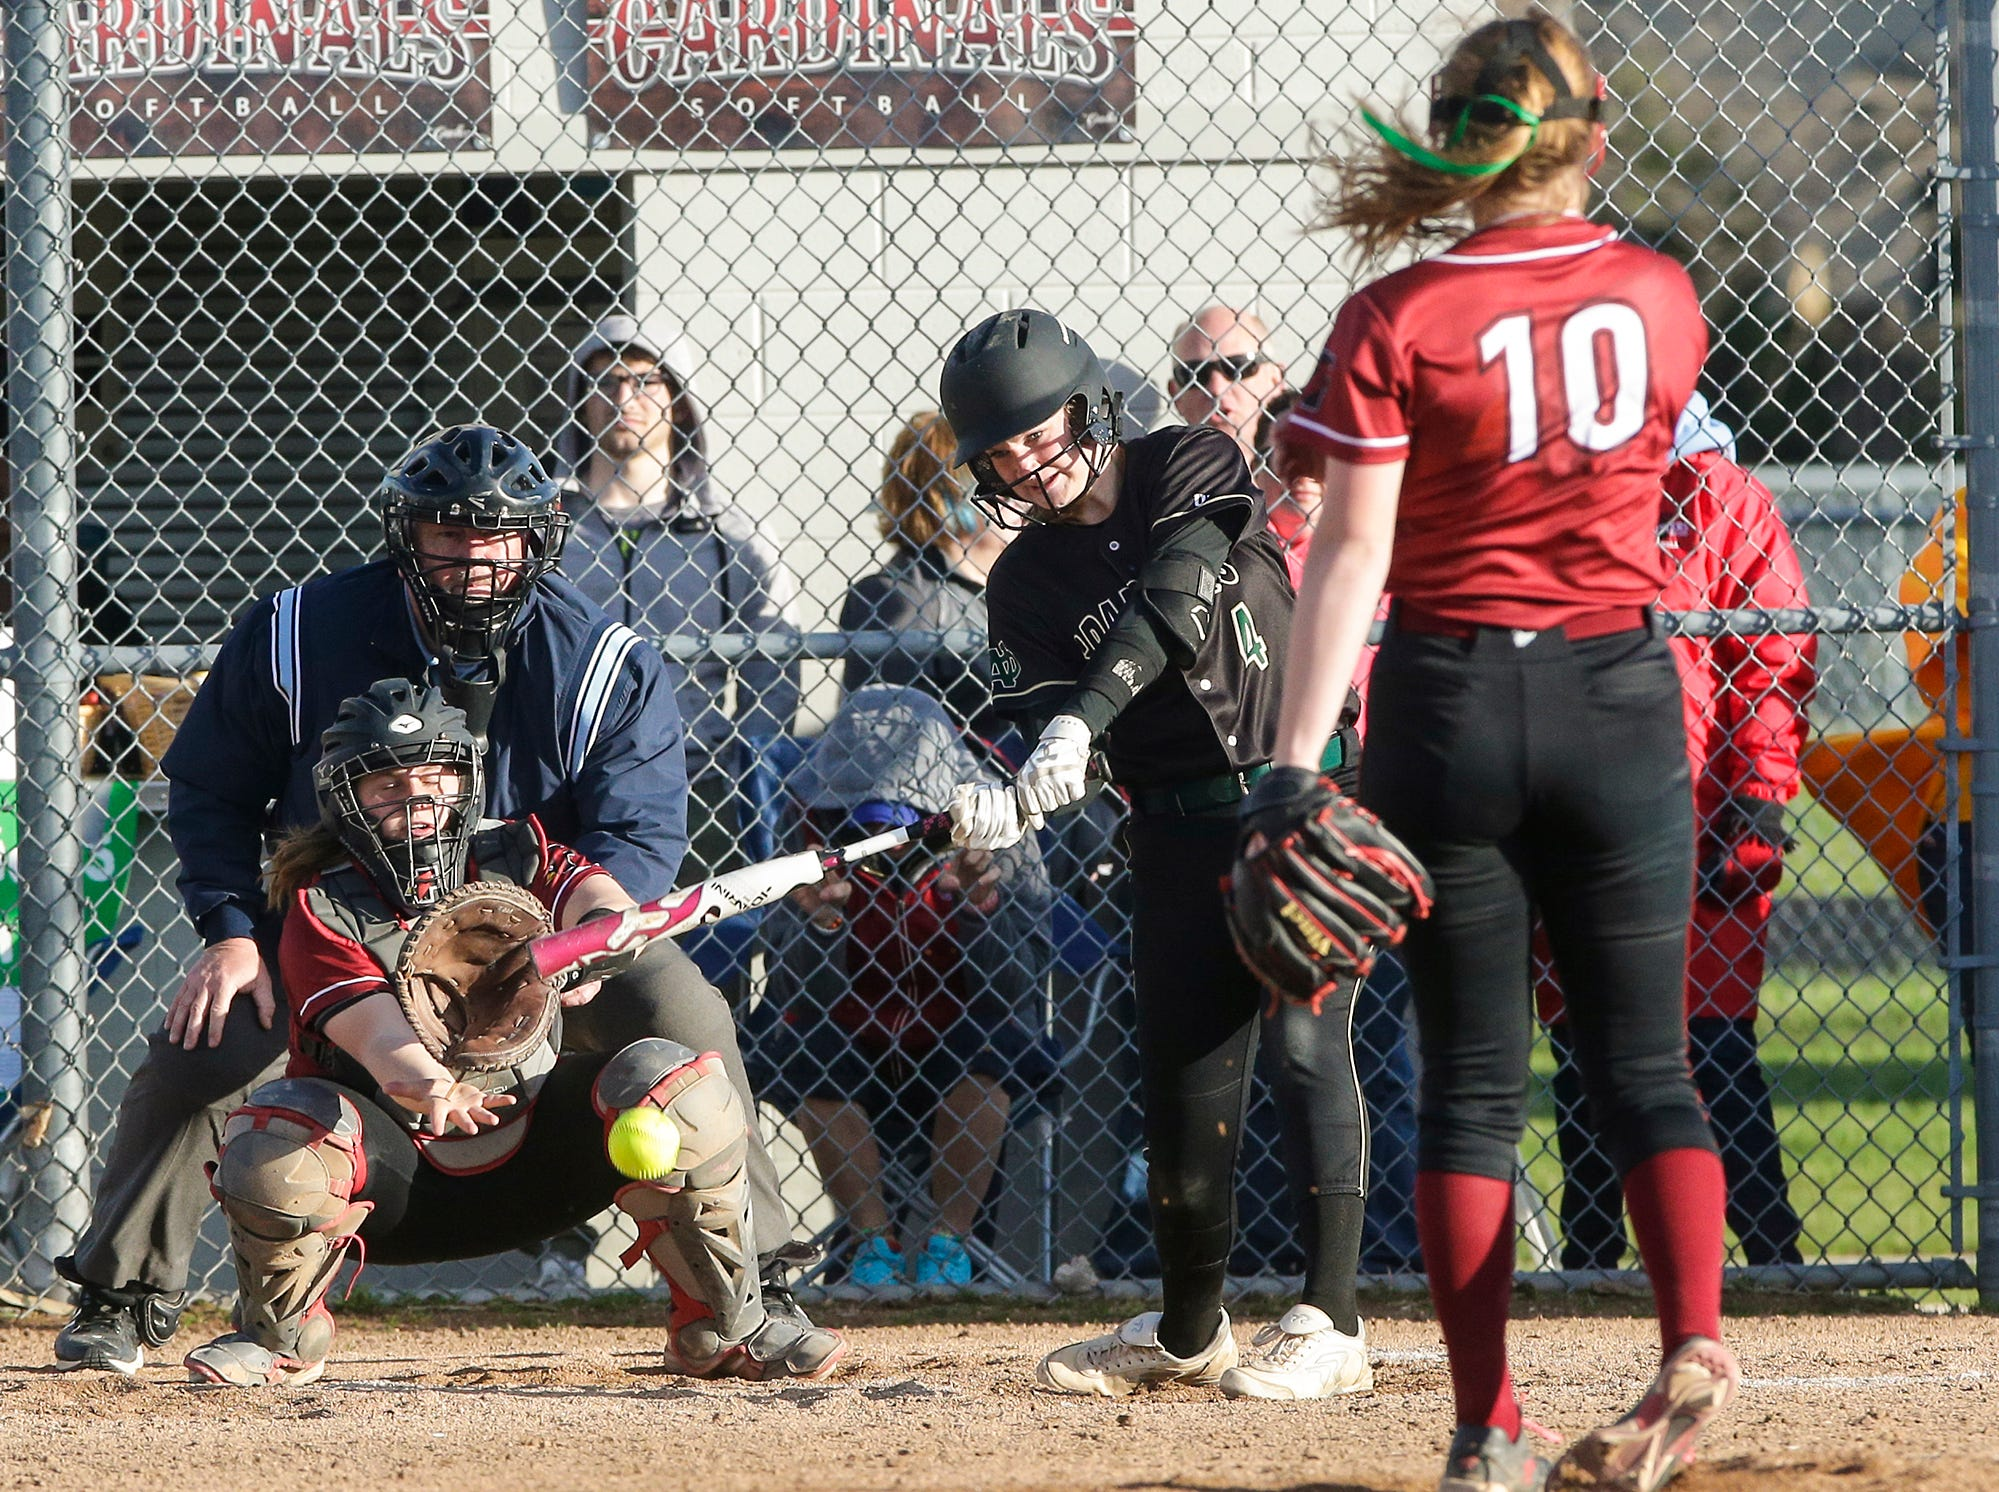 Oshkosh North High School softball's Noelle Frank drives in a run with this single against Fond du Lac High School during their game Friday, April 26, 2019 in Fond du Lac, Wis. Doug Raflik/USA TODAY NETWORK-Wisconsin